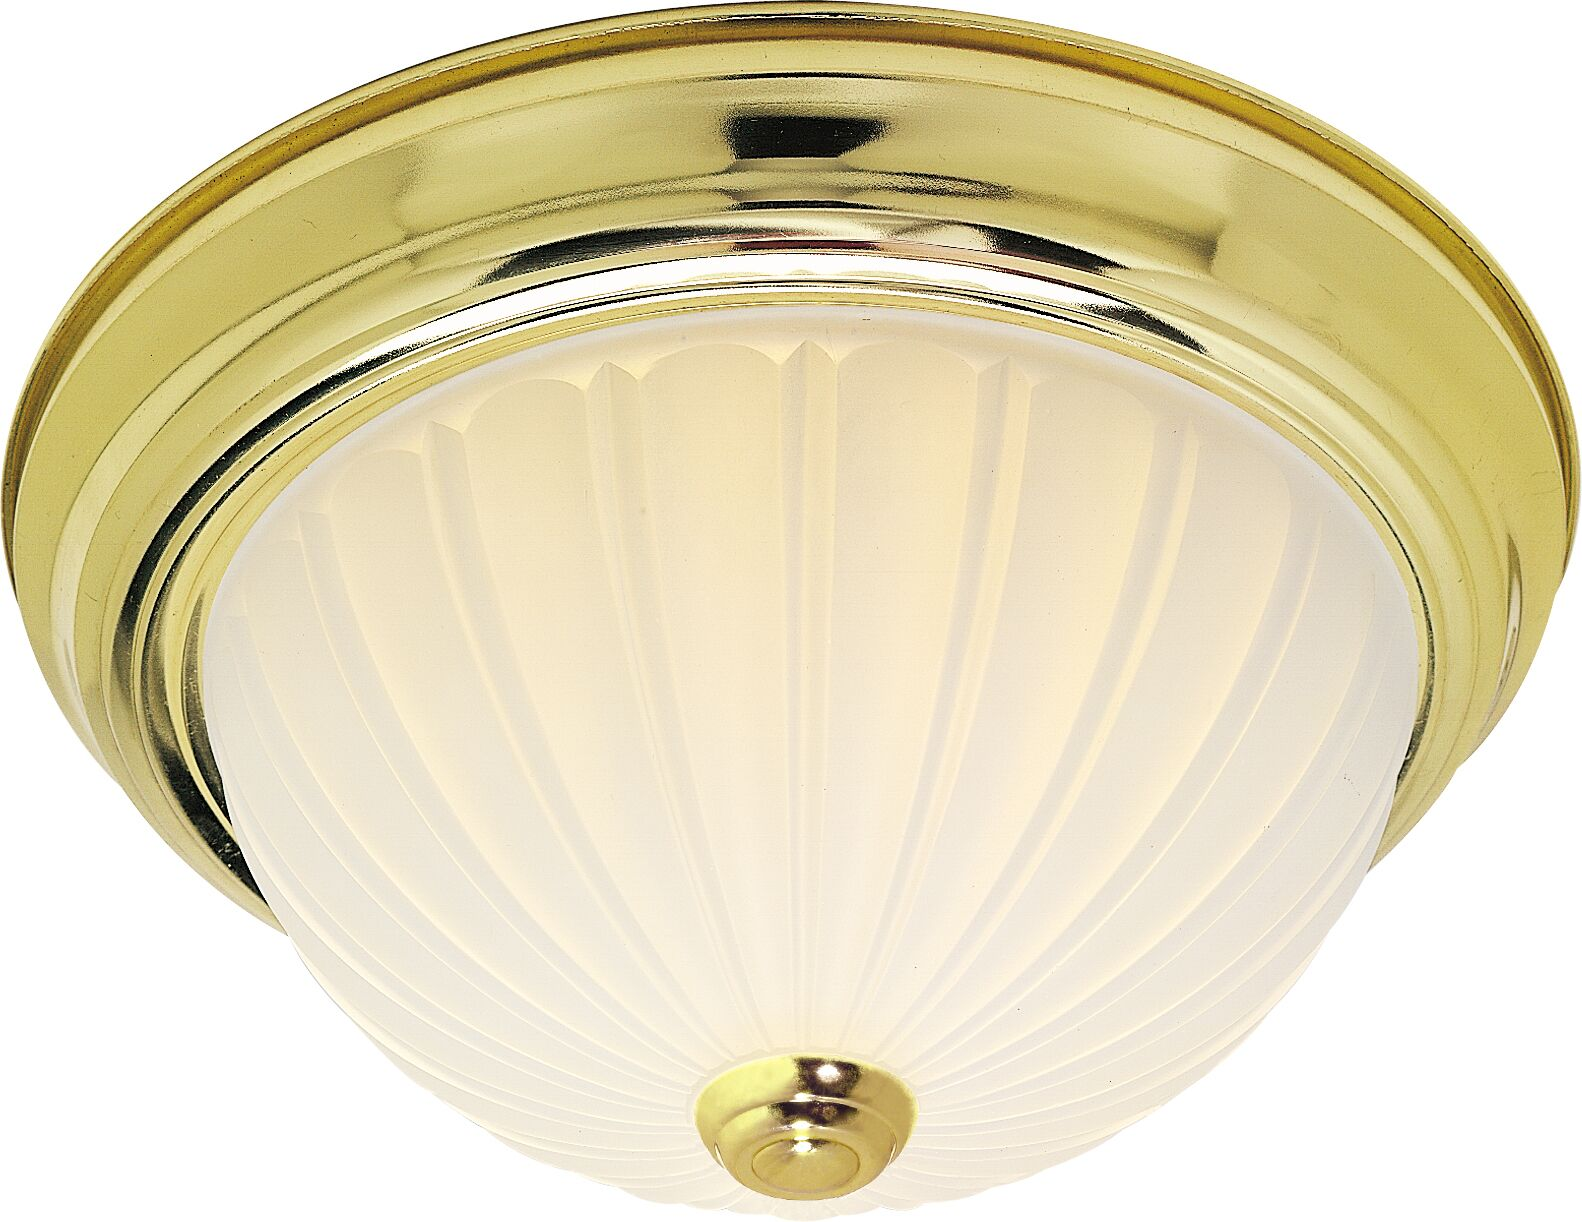 Talbott Flush Mount Size: 5.25